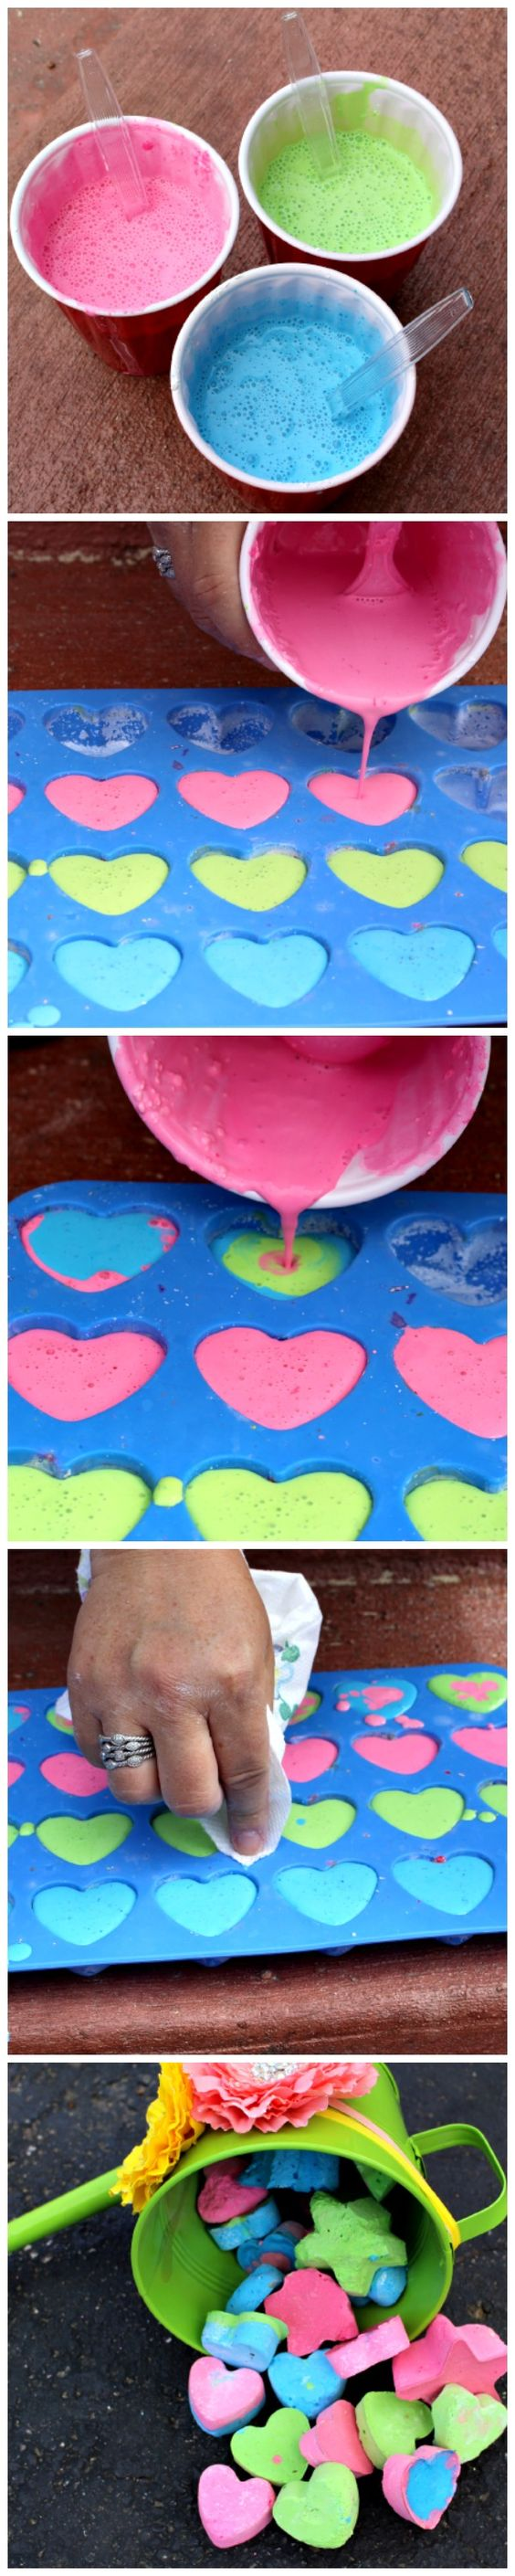 DIY Sidewalk Chalk - 3 ingredients!!